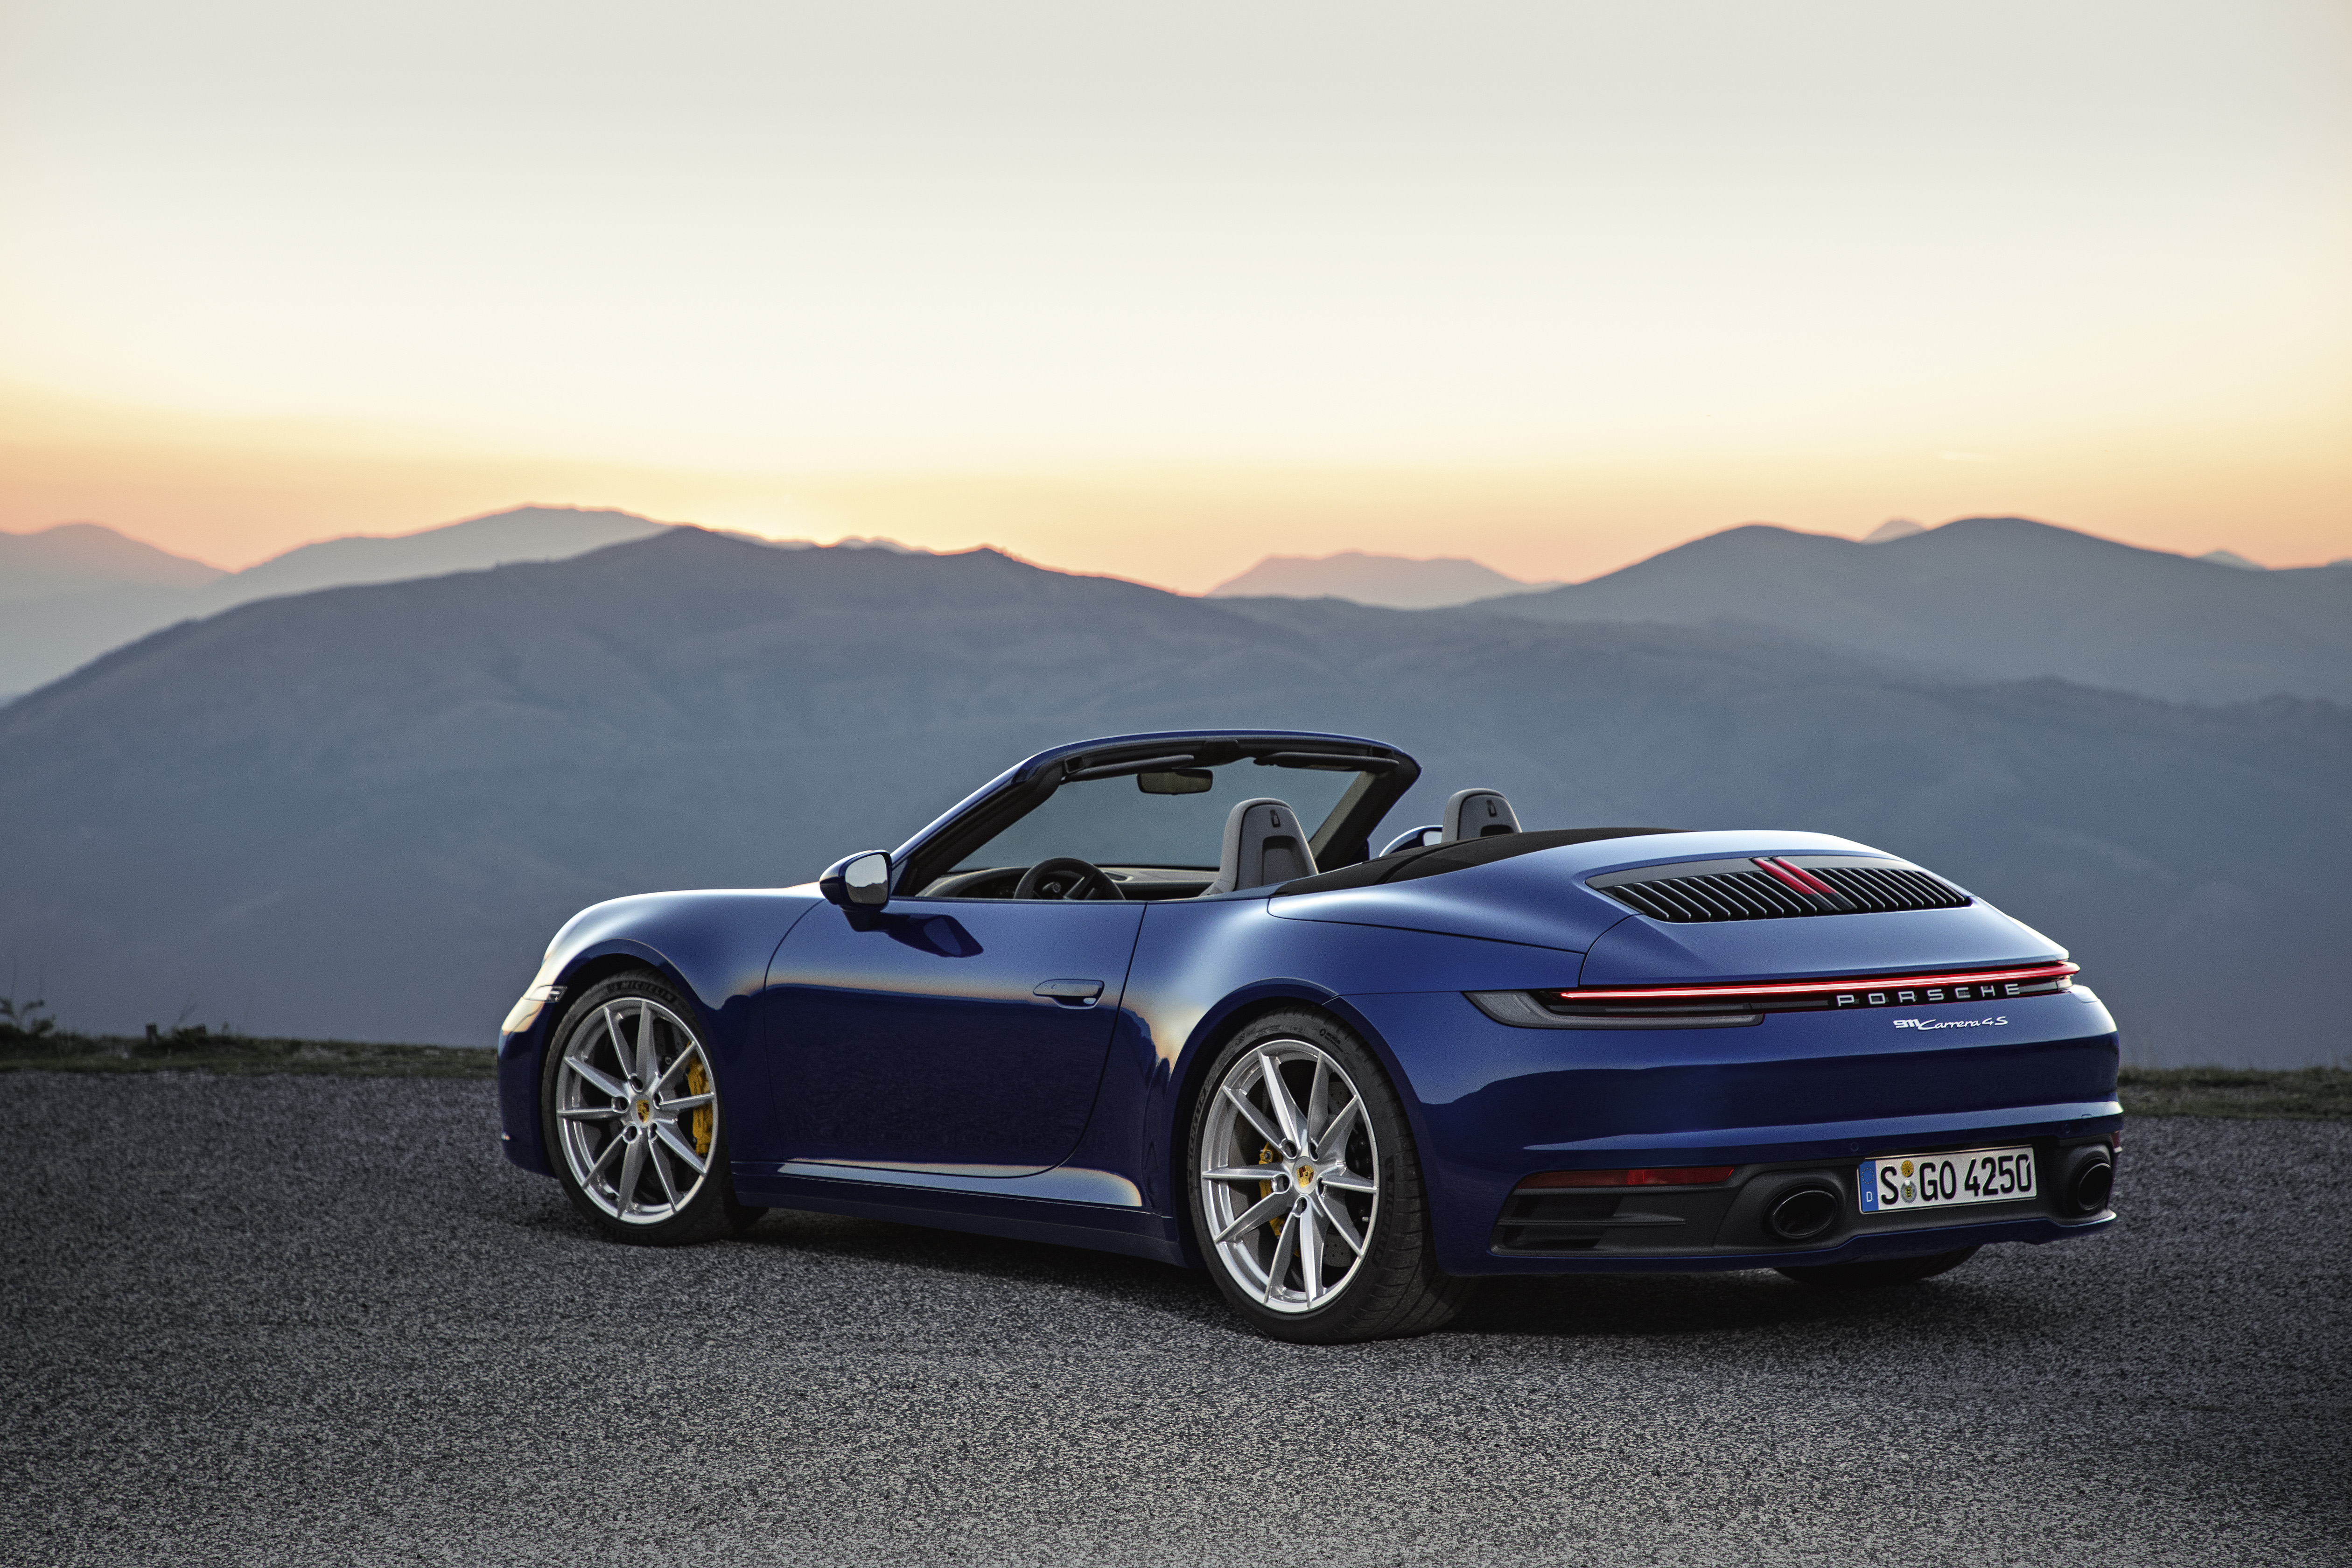 Porsche 911 Carrera 4s Cabriolet 2019 Hd Cars 4k Wallpapers Images Backgrounds Photos And Pictures Porsche 911 carrera 4s 2019 5k